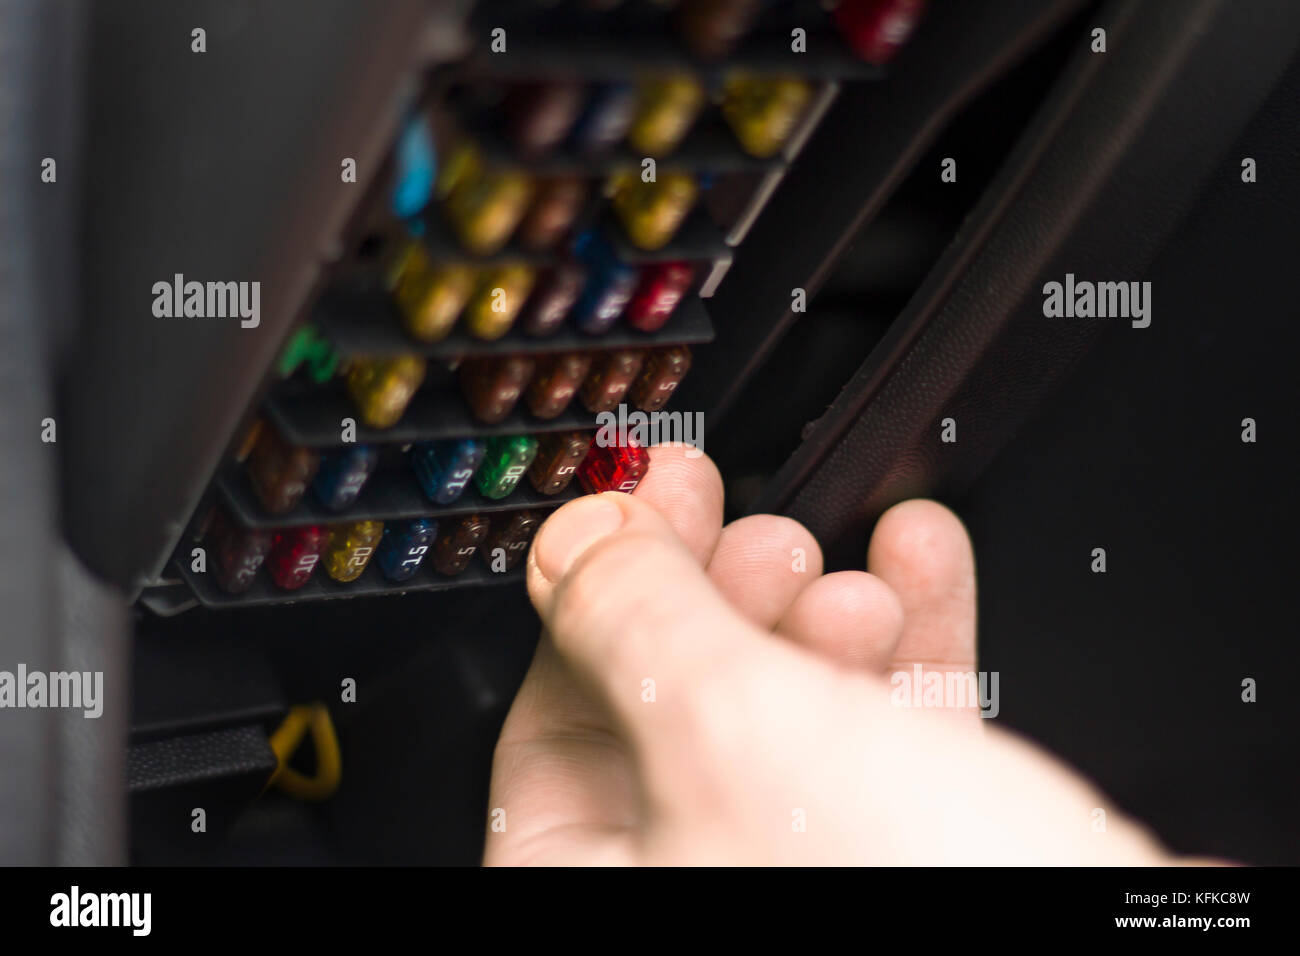 Fuse Box Inserts Trusted Wiring Diagram Addacircuit Standard Blade Holder 12 Volt Planet Car Stock Photos Images Alamy Rh Com Circuit